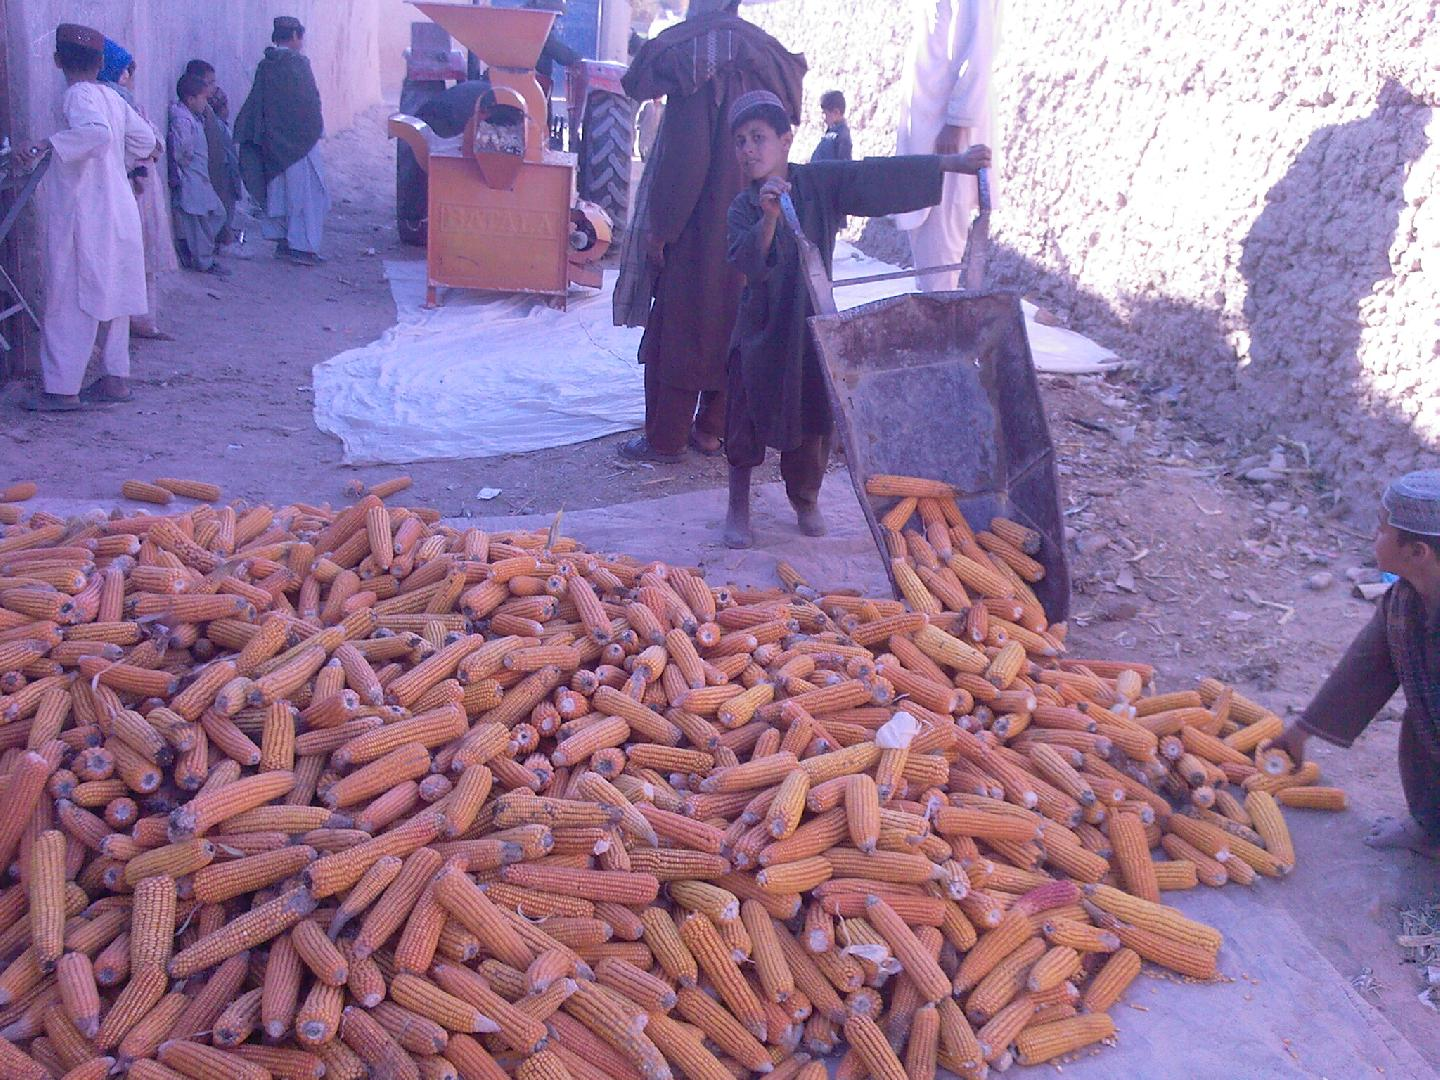 Improving the understanding of agricultural cycles and practices in Afghanistan